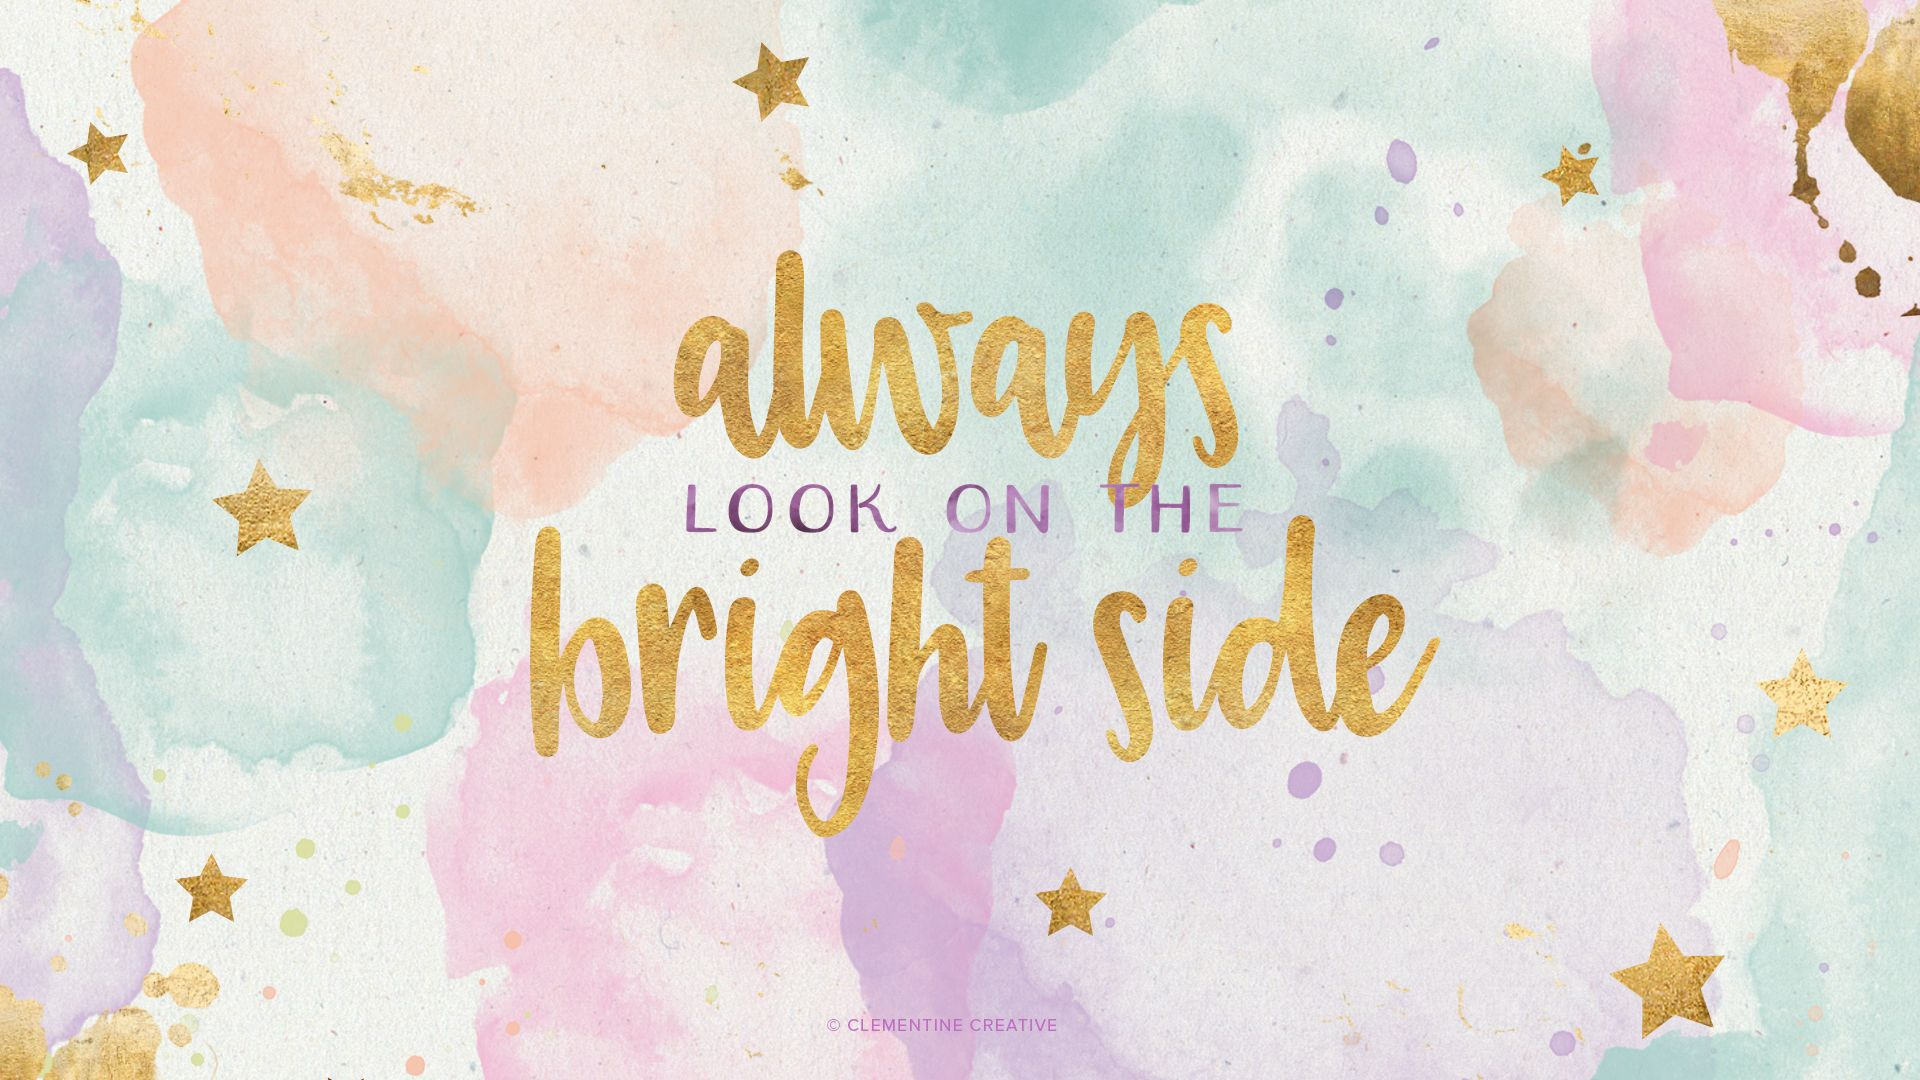 free wallpaper: always look on the bright side | pinterest